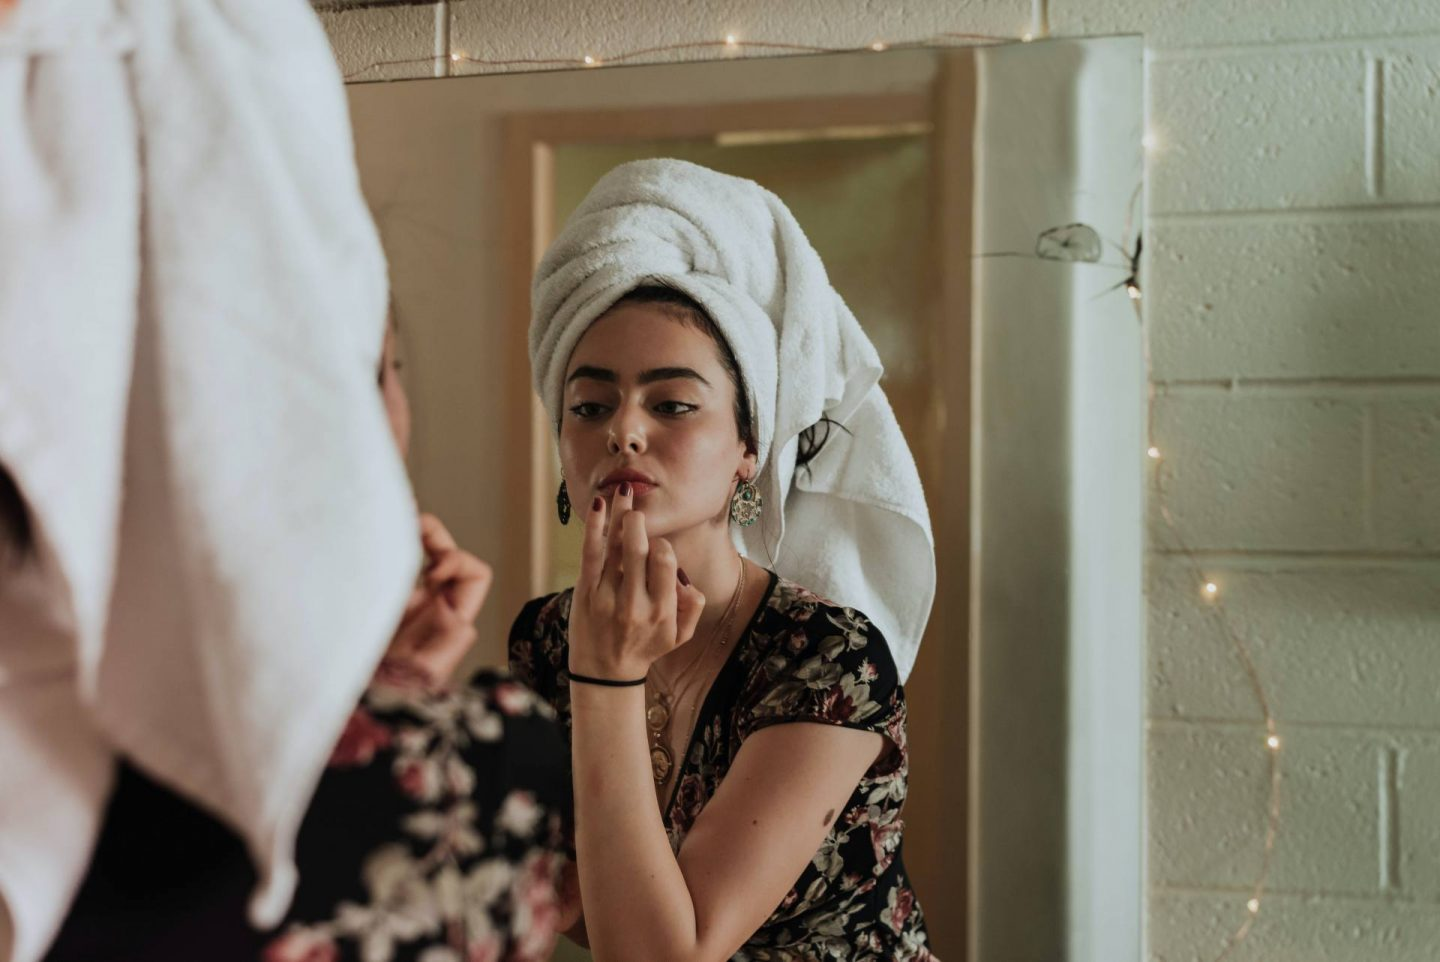 A woman with a towel looking in the mirror